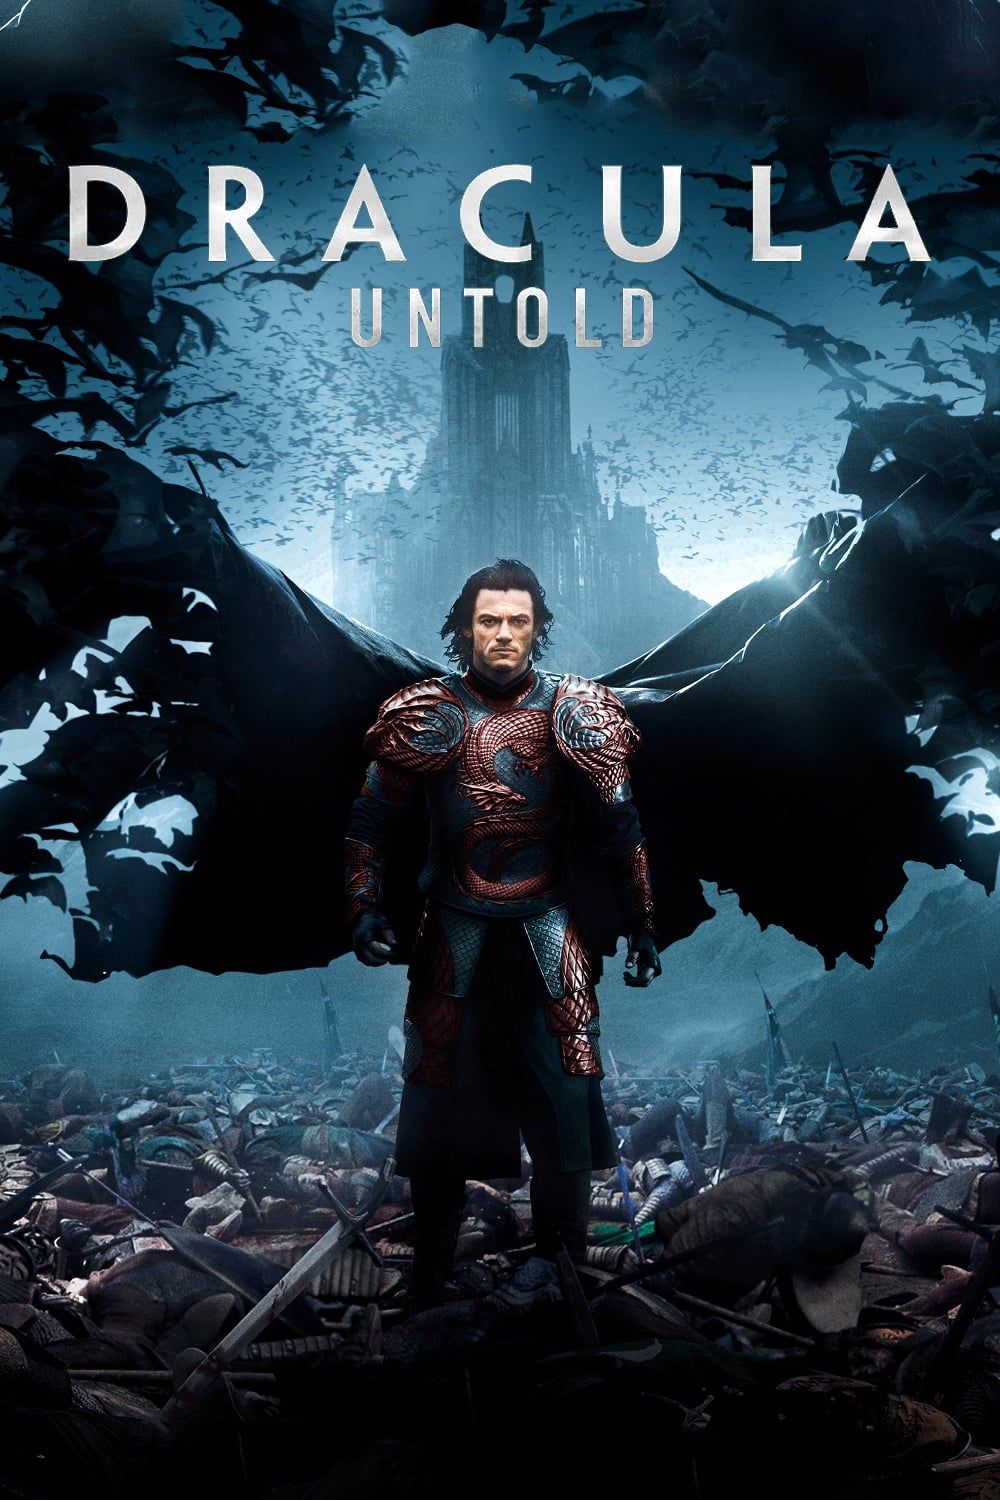 Dracula Untold (2014) 1080p BluRay x264 ESubs Dual Audio [Hindi DTS 5.1 + English DD5.1]